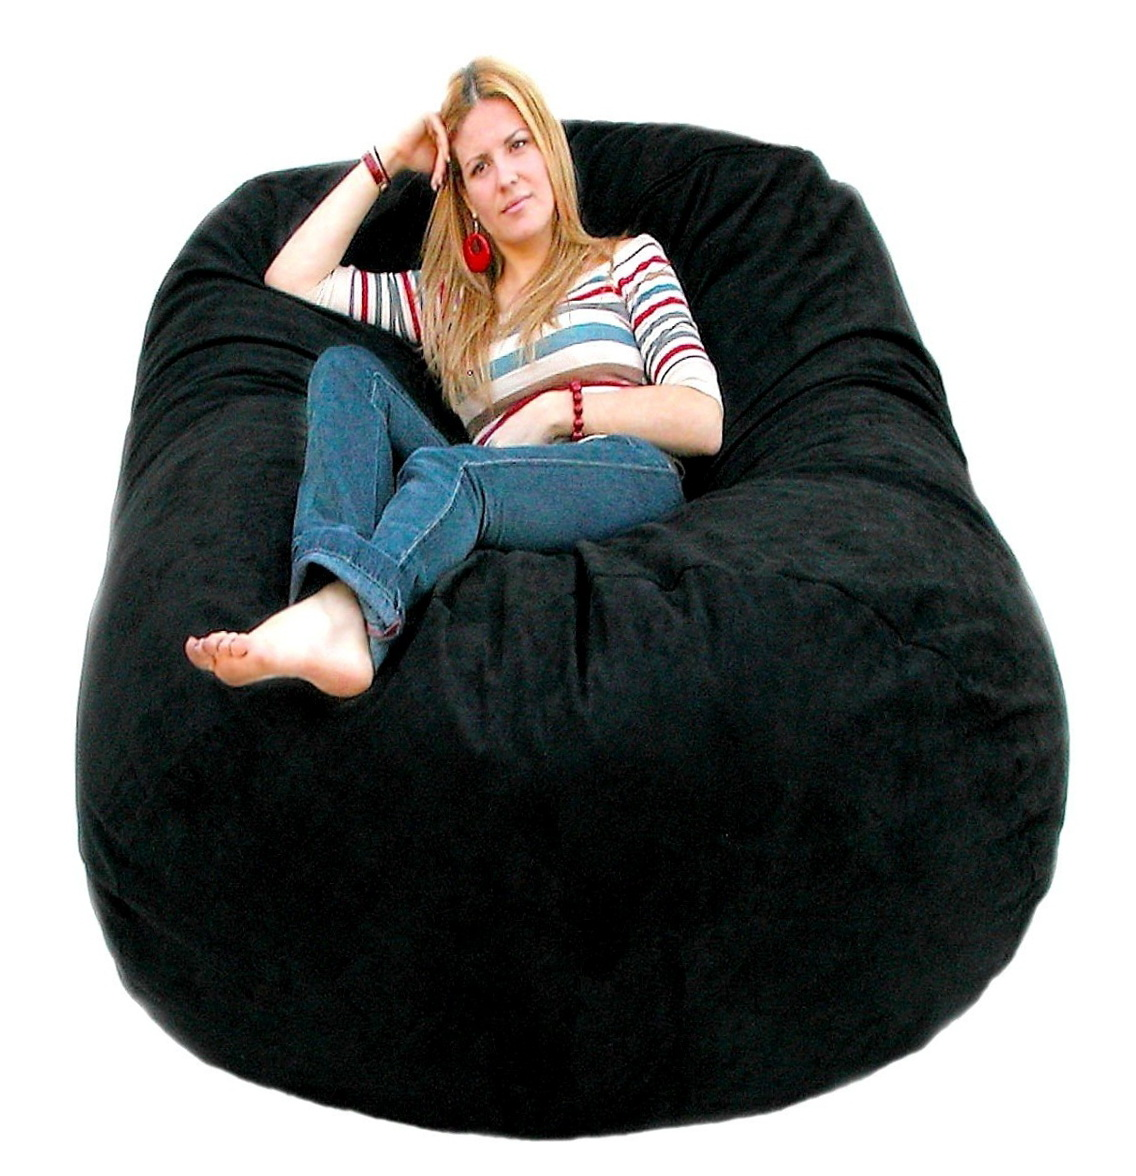 Big Bean Bag Chairs Cheapbig Bean Bag Chairs Cheap